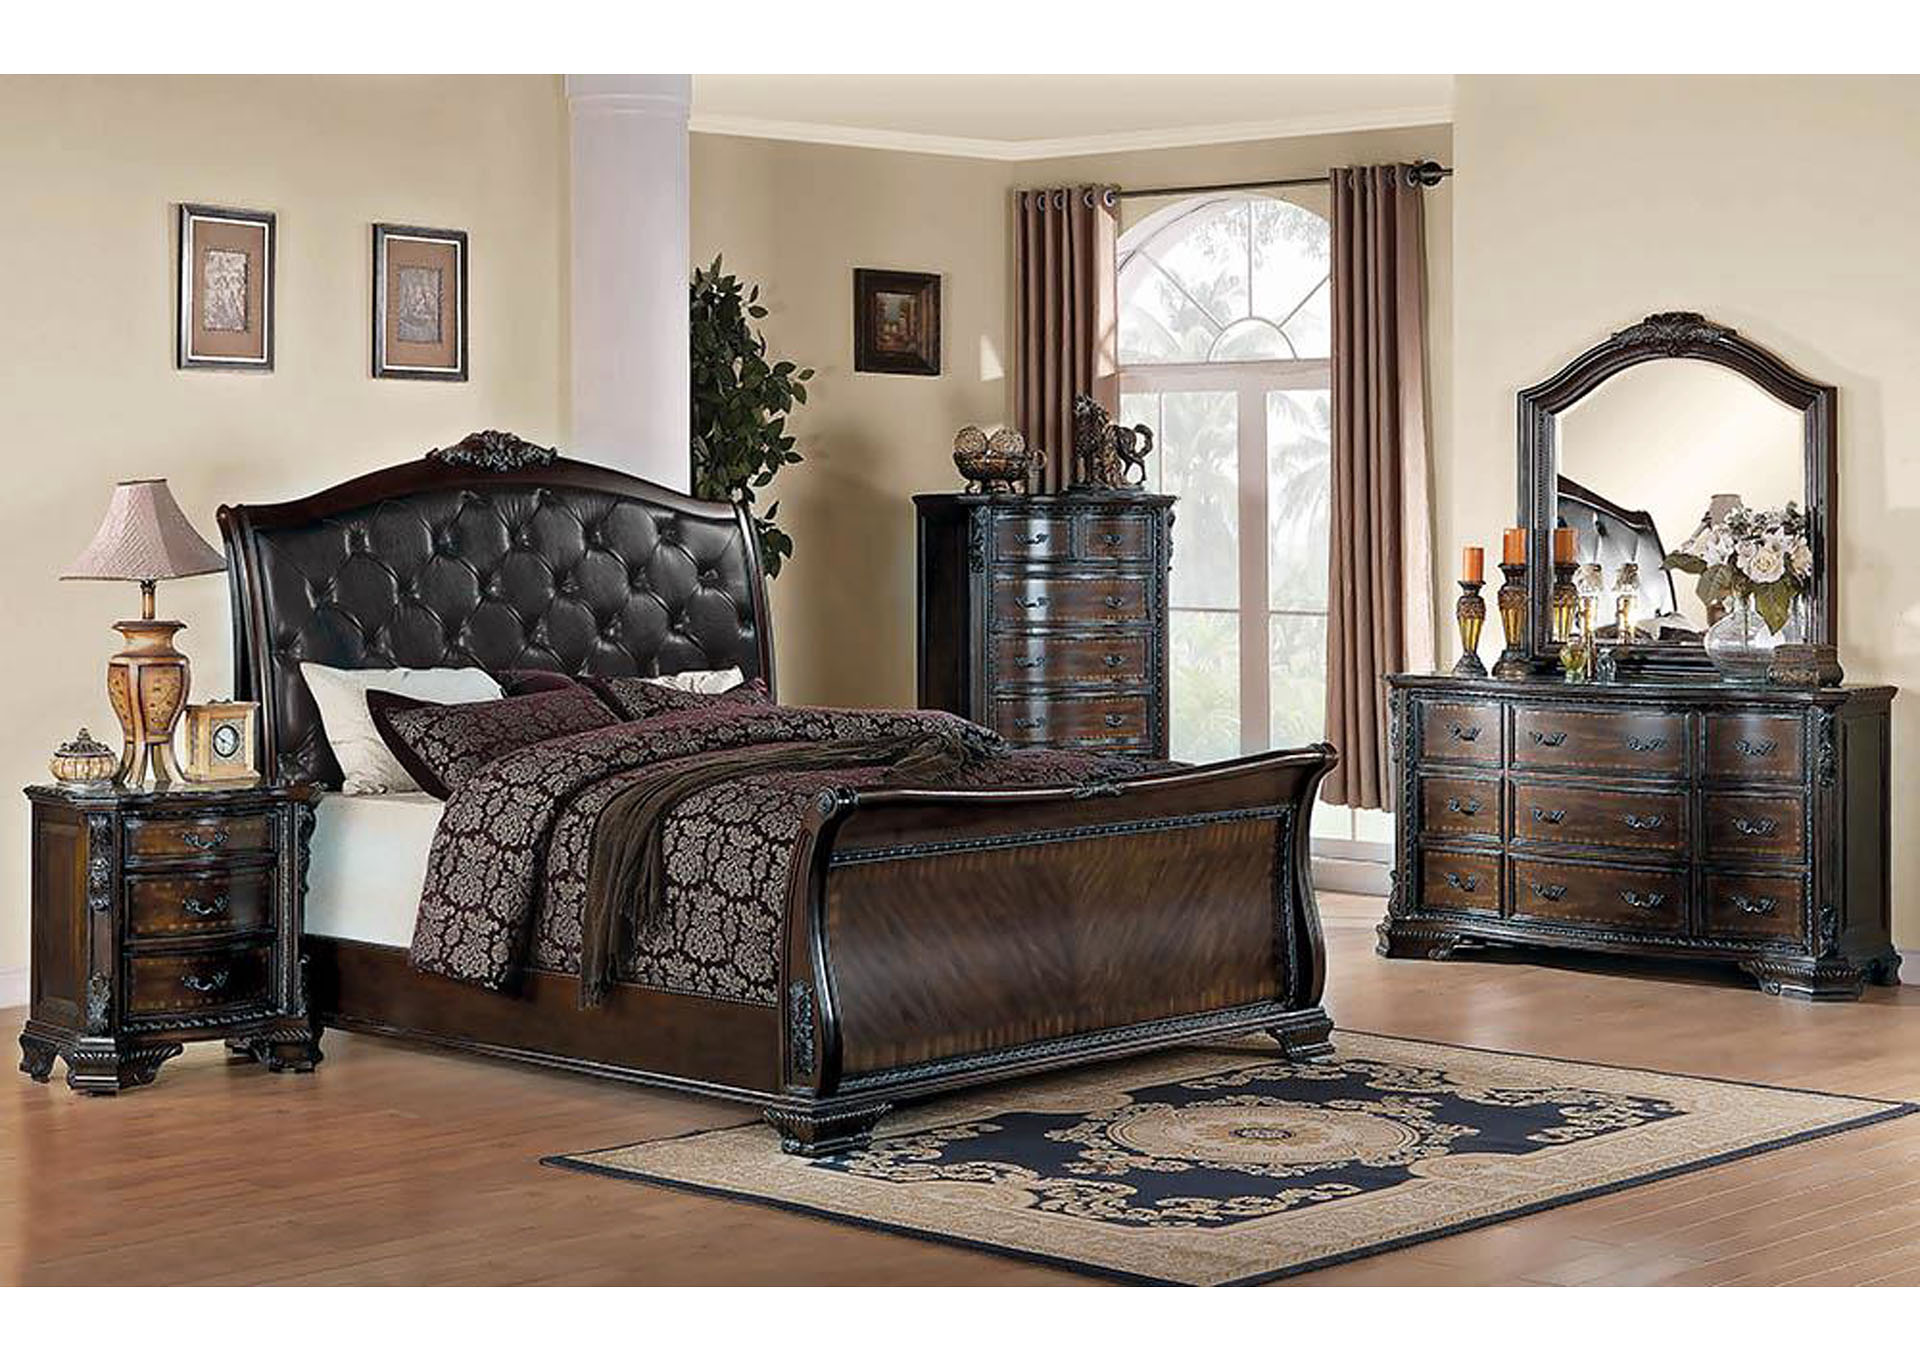 Maddison Black & Brown Cherry King Bed,Coaster Furniture